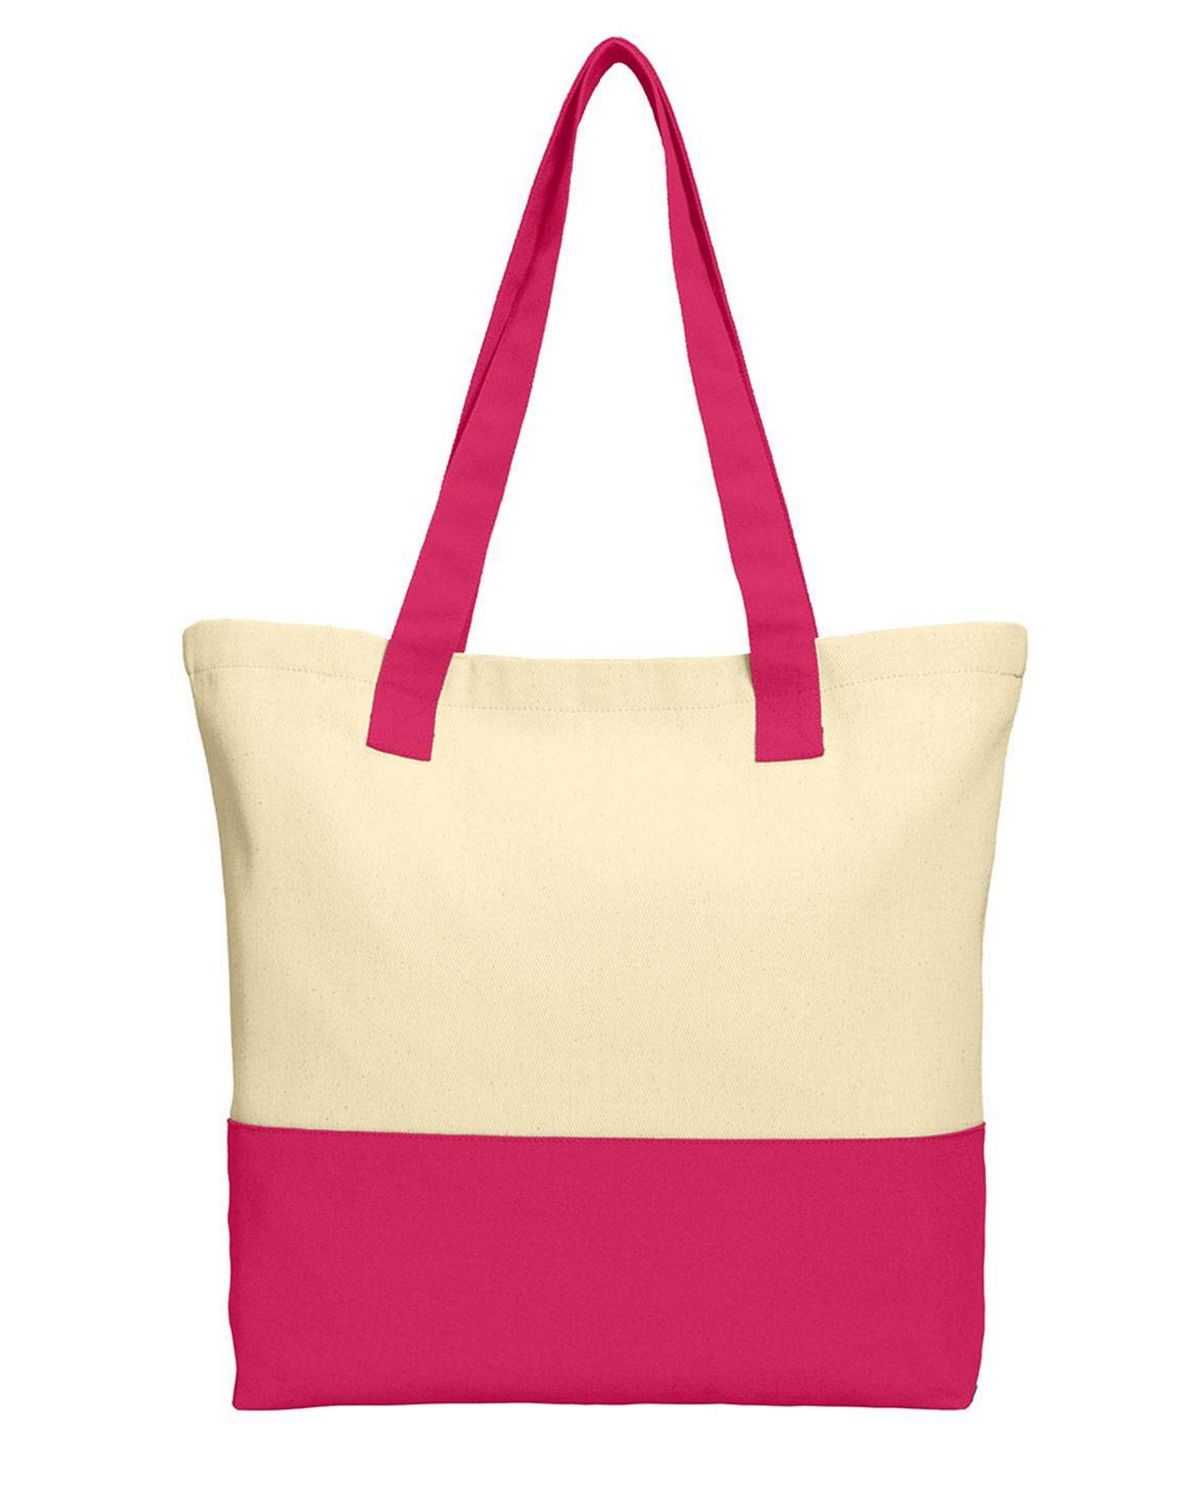 Port Authority BG414 Colorblock Cotton Tote